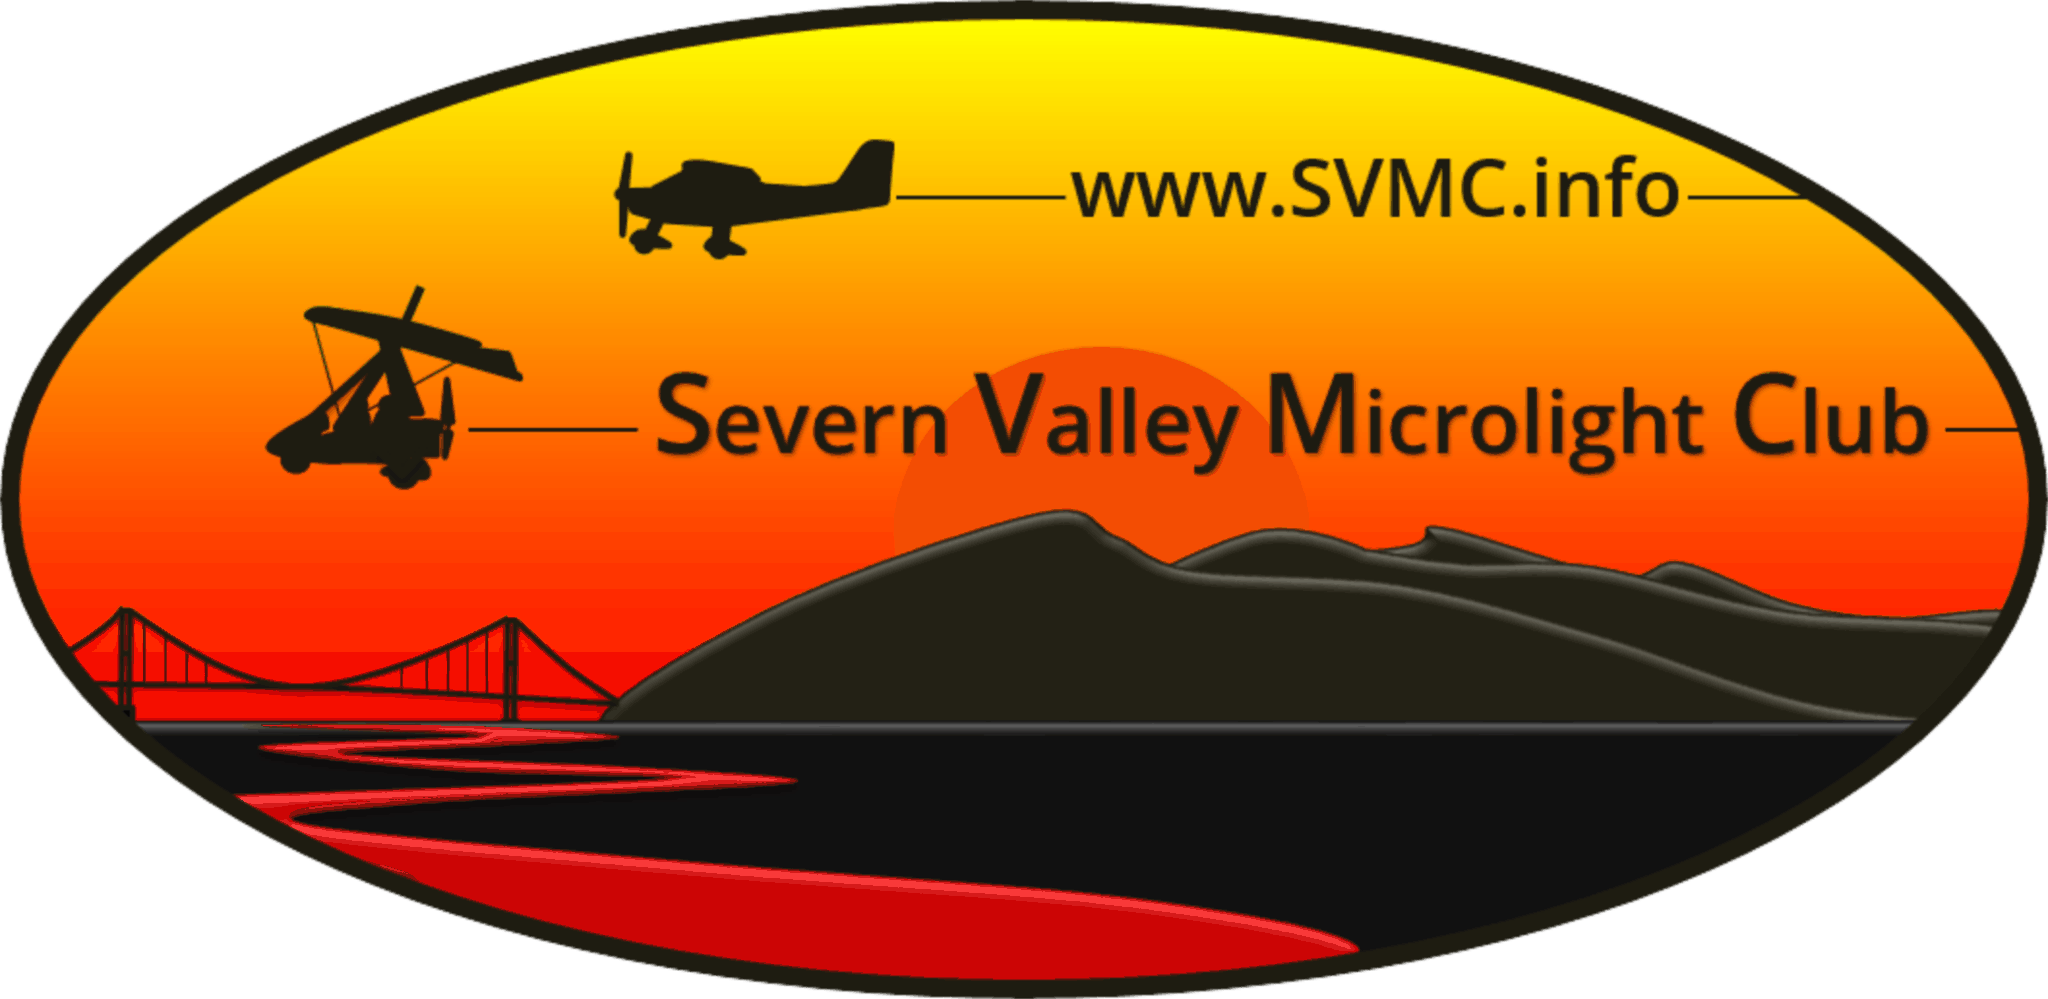 Severn Valley Microlight Club